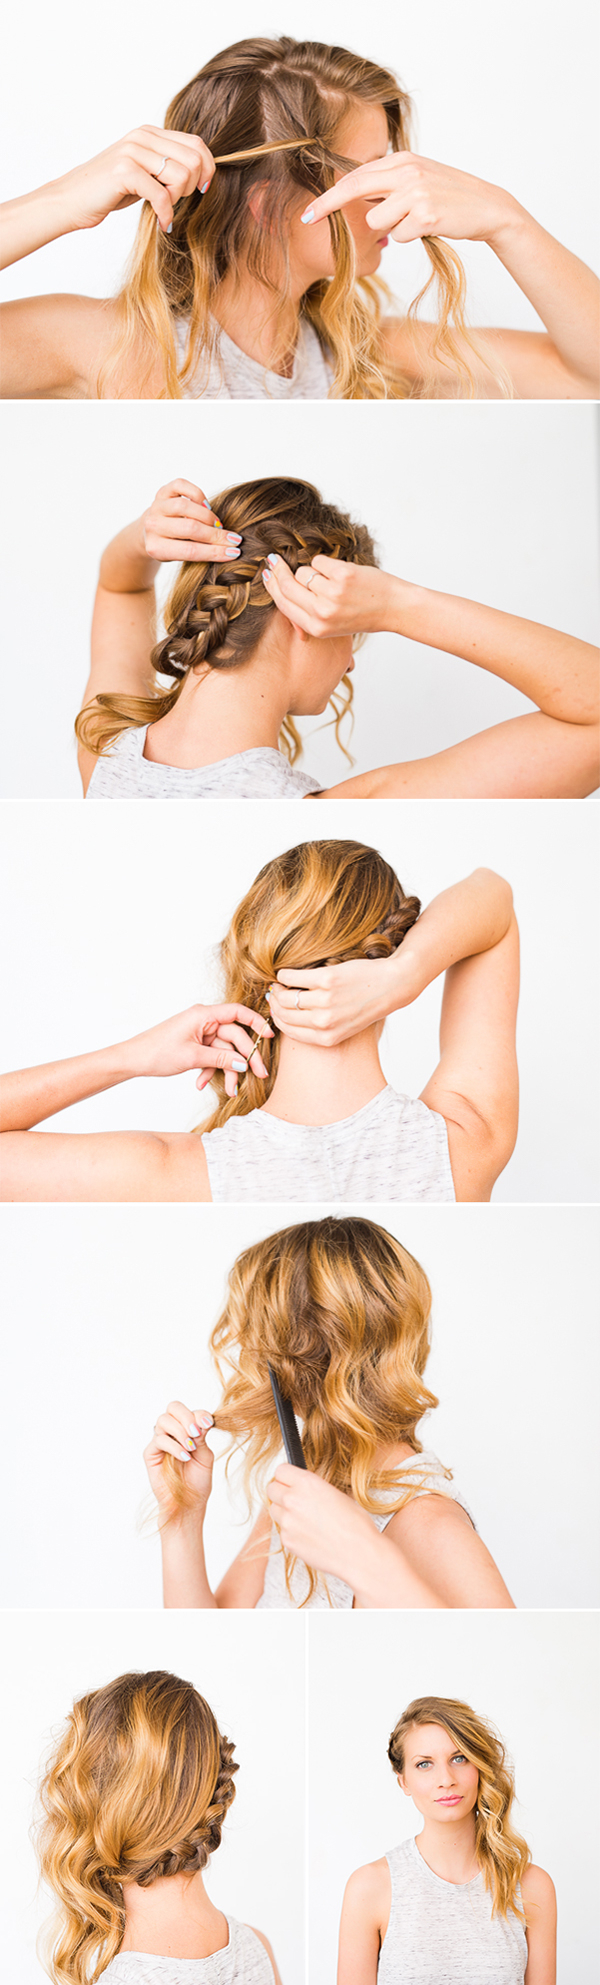 Swept Away: Diy Side Swept Braid And Wave Hair – Paper And Throughout Favorite Side Swept Braid Hairstyles (View 12 of 20)